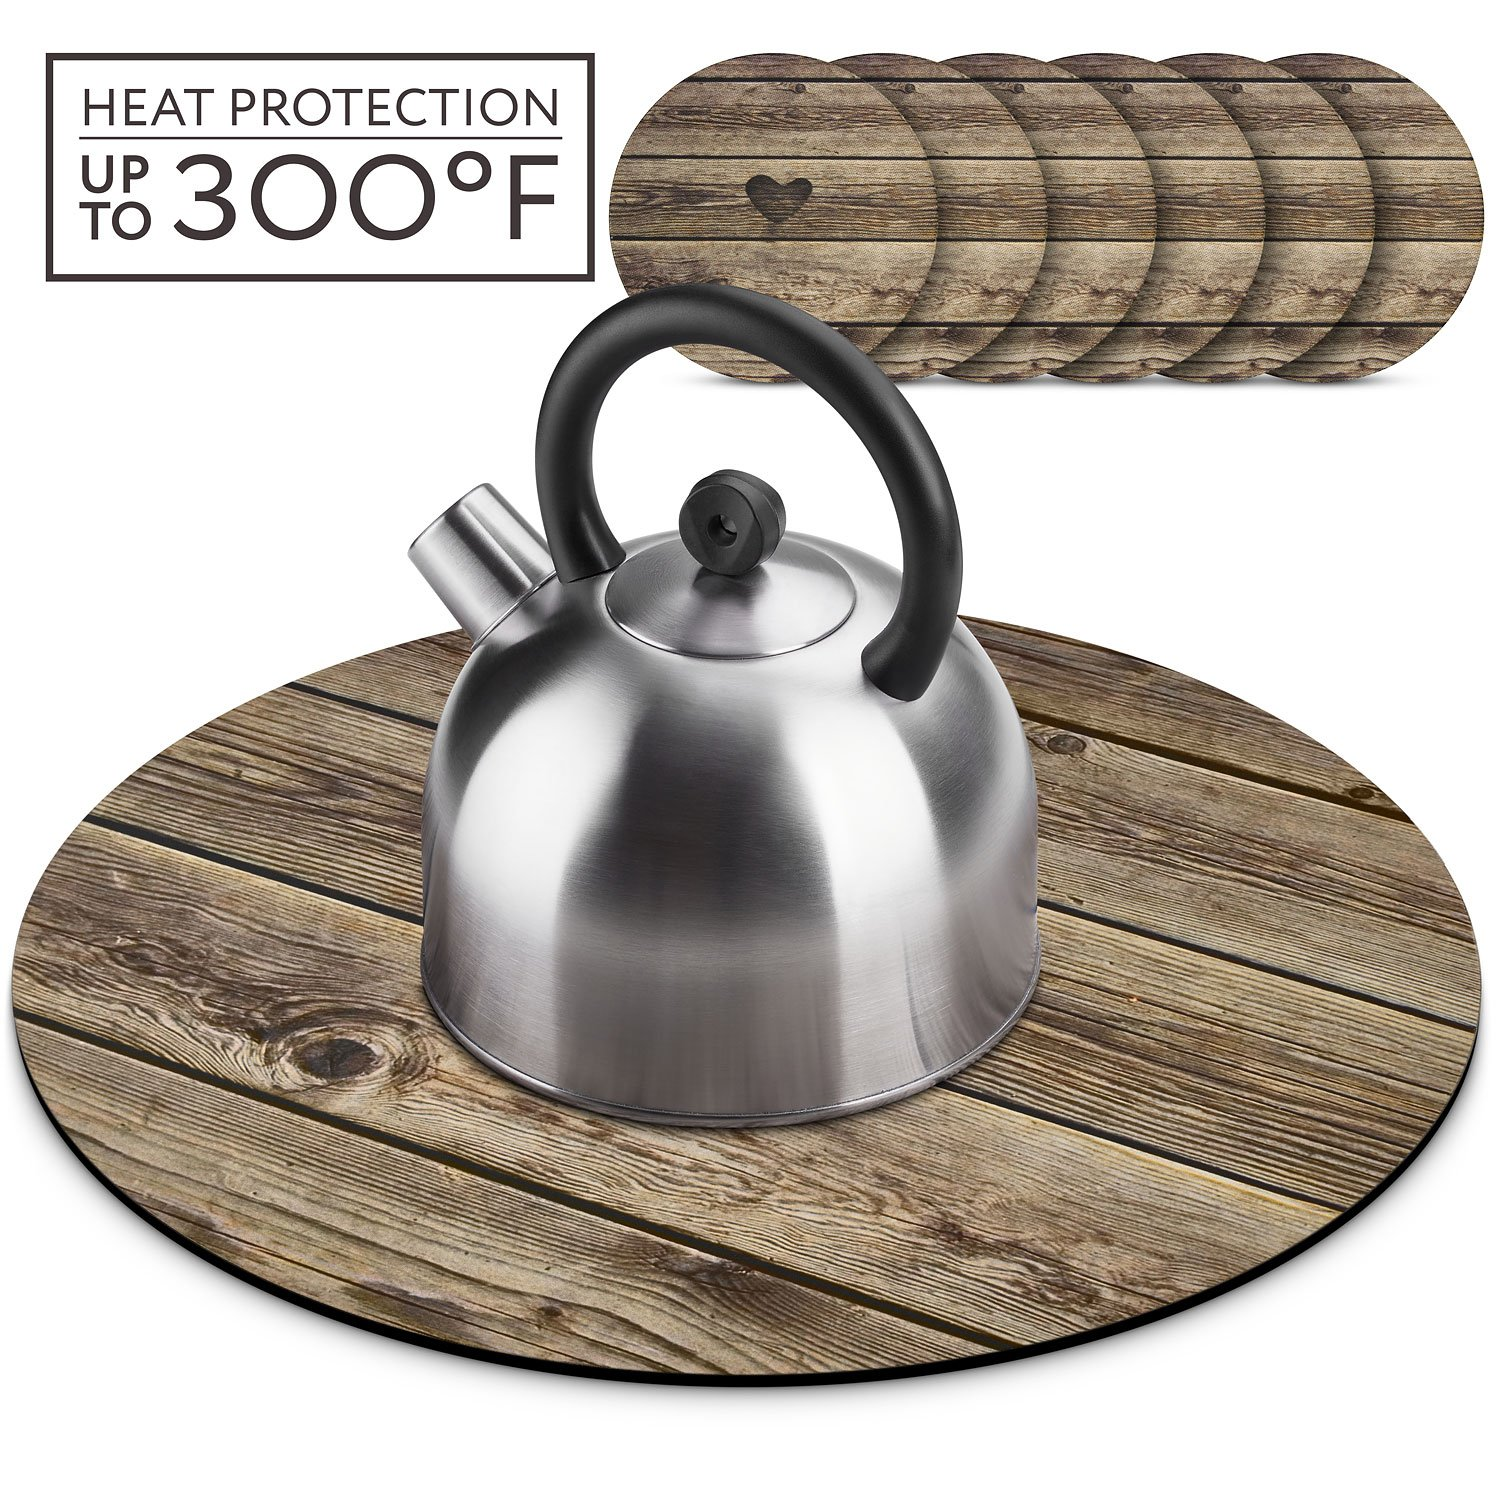 Wooden Farmhouse Teapot Trivet Set, Hot Pad for Table with 6 4 inch Cup Coasters Set, for Hot Pots Hot Kettles Dishes and Table Decoration Placemat. Wooden Rustic by TRIVETRUNNER